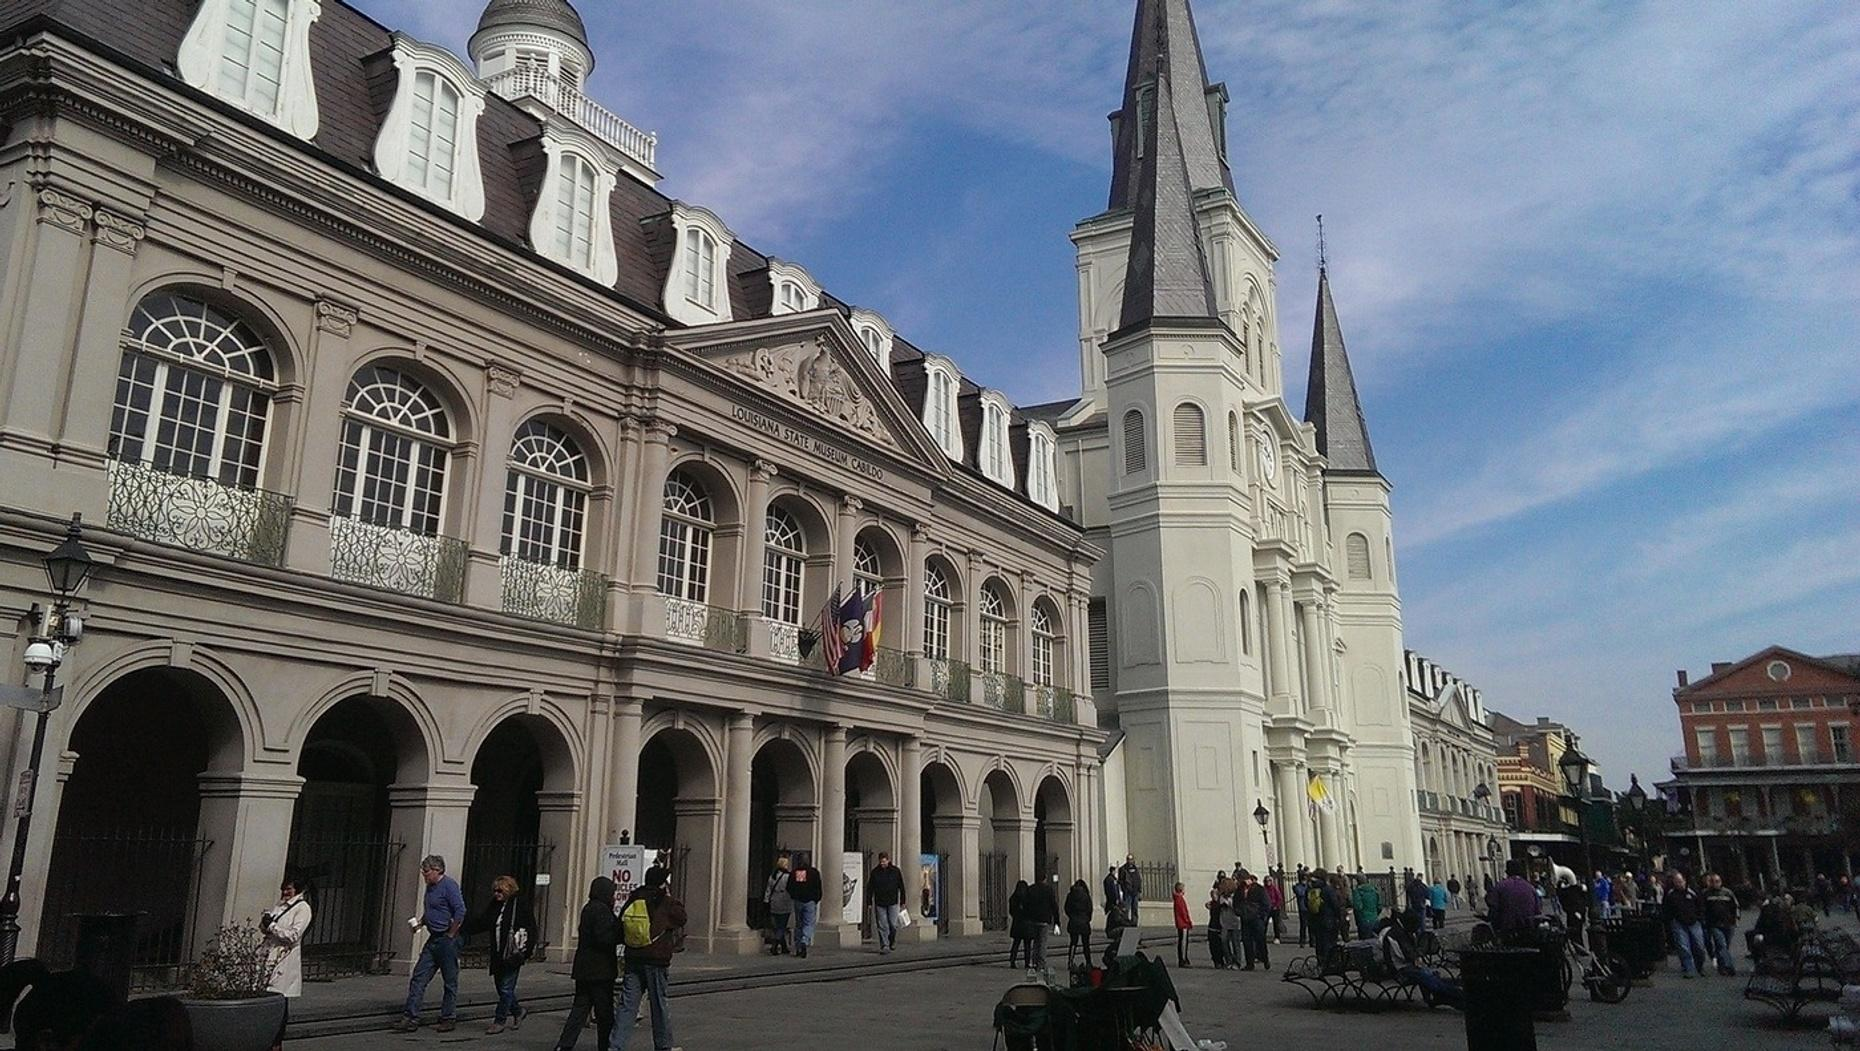 Tour of Oswald's Life in New Orleans